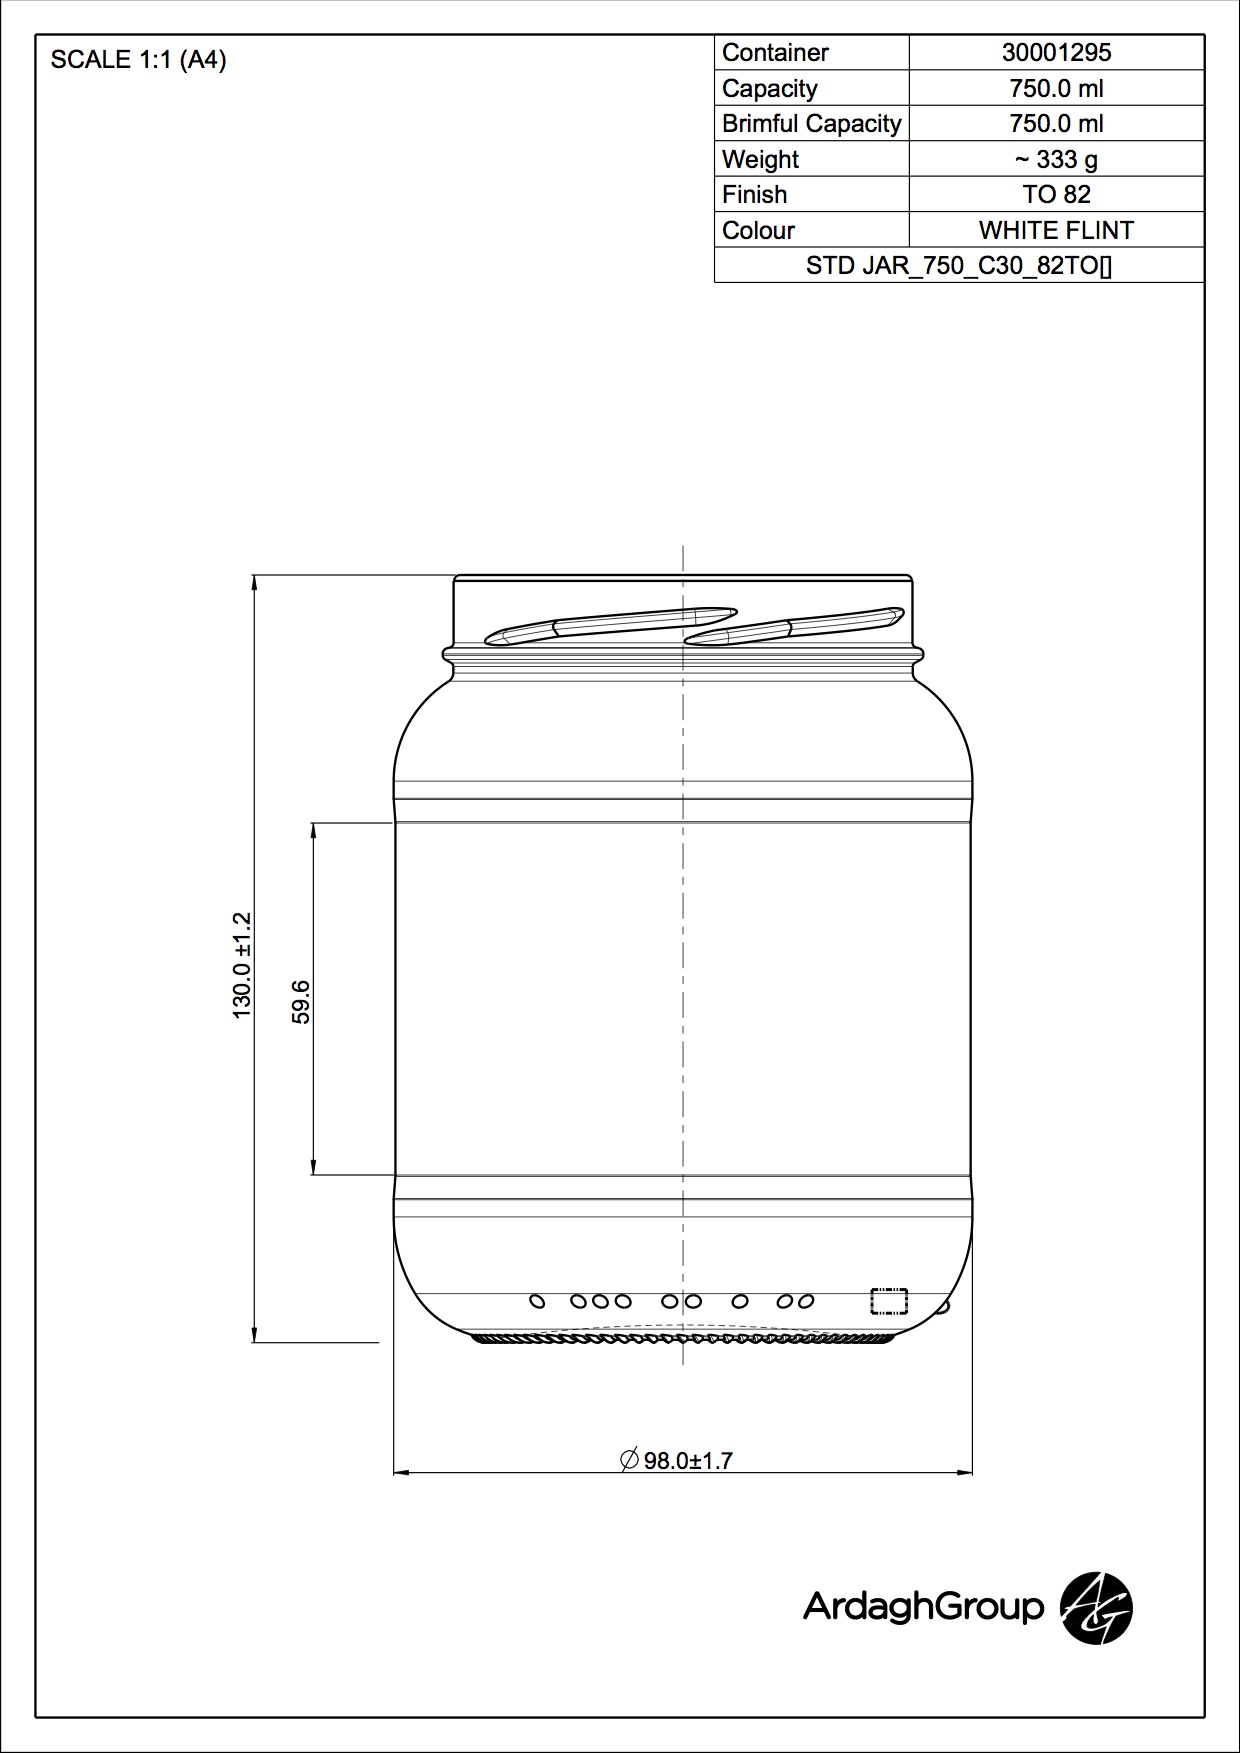 STD JAR 750 C30 82TO